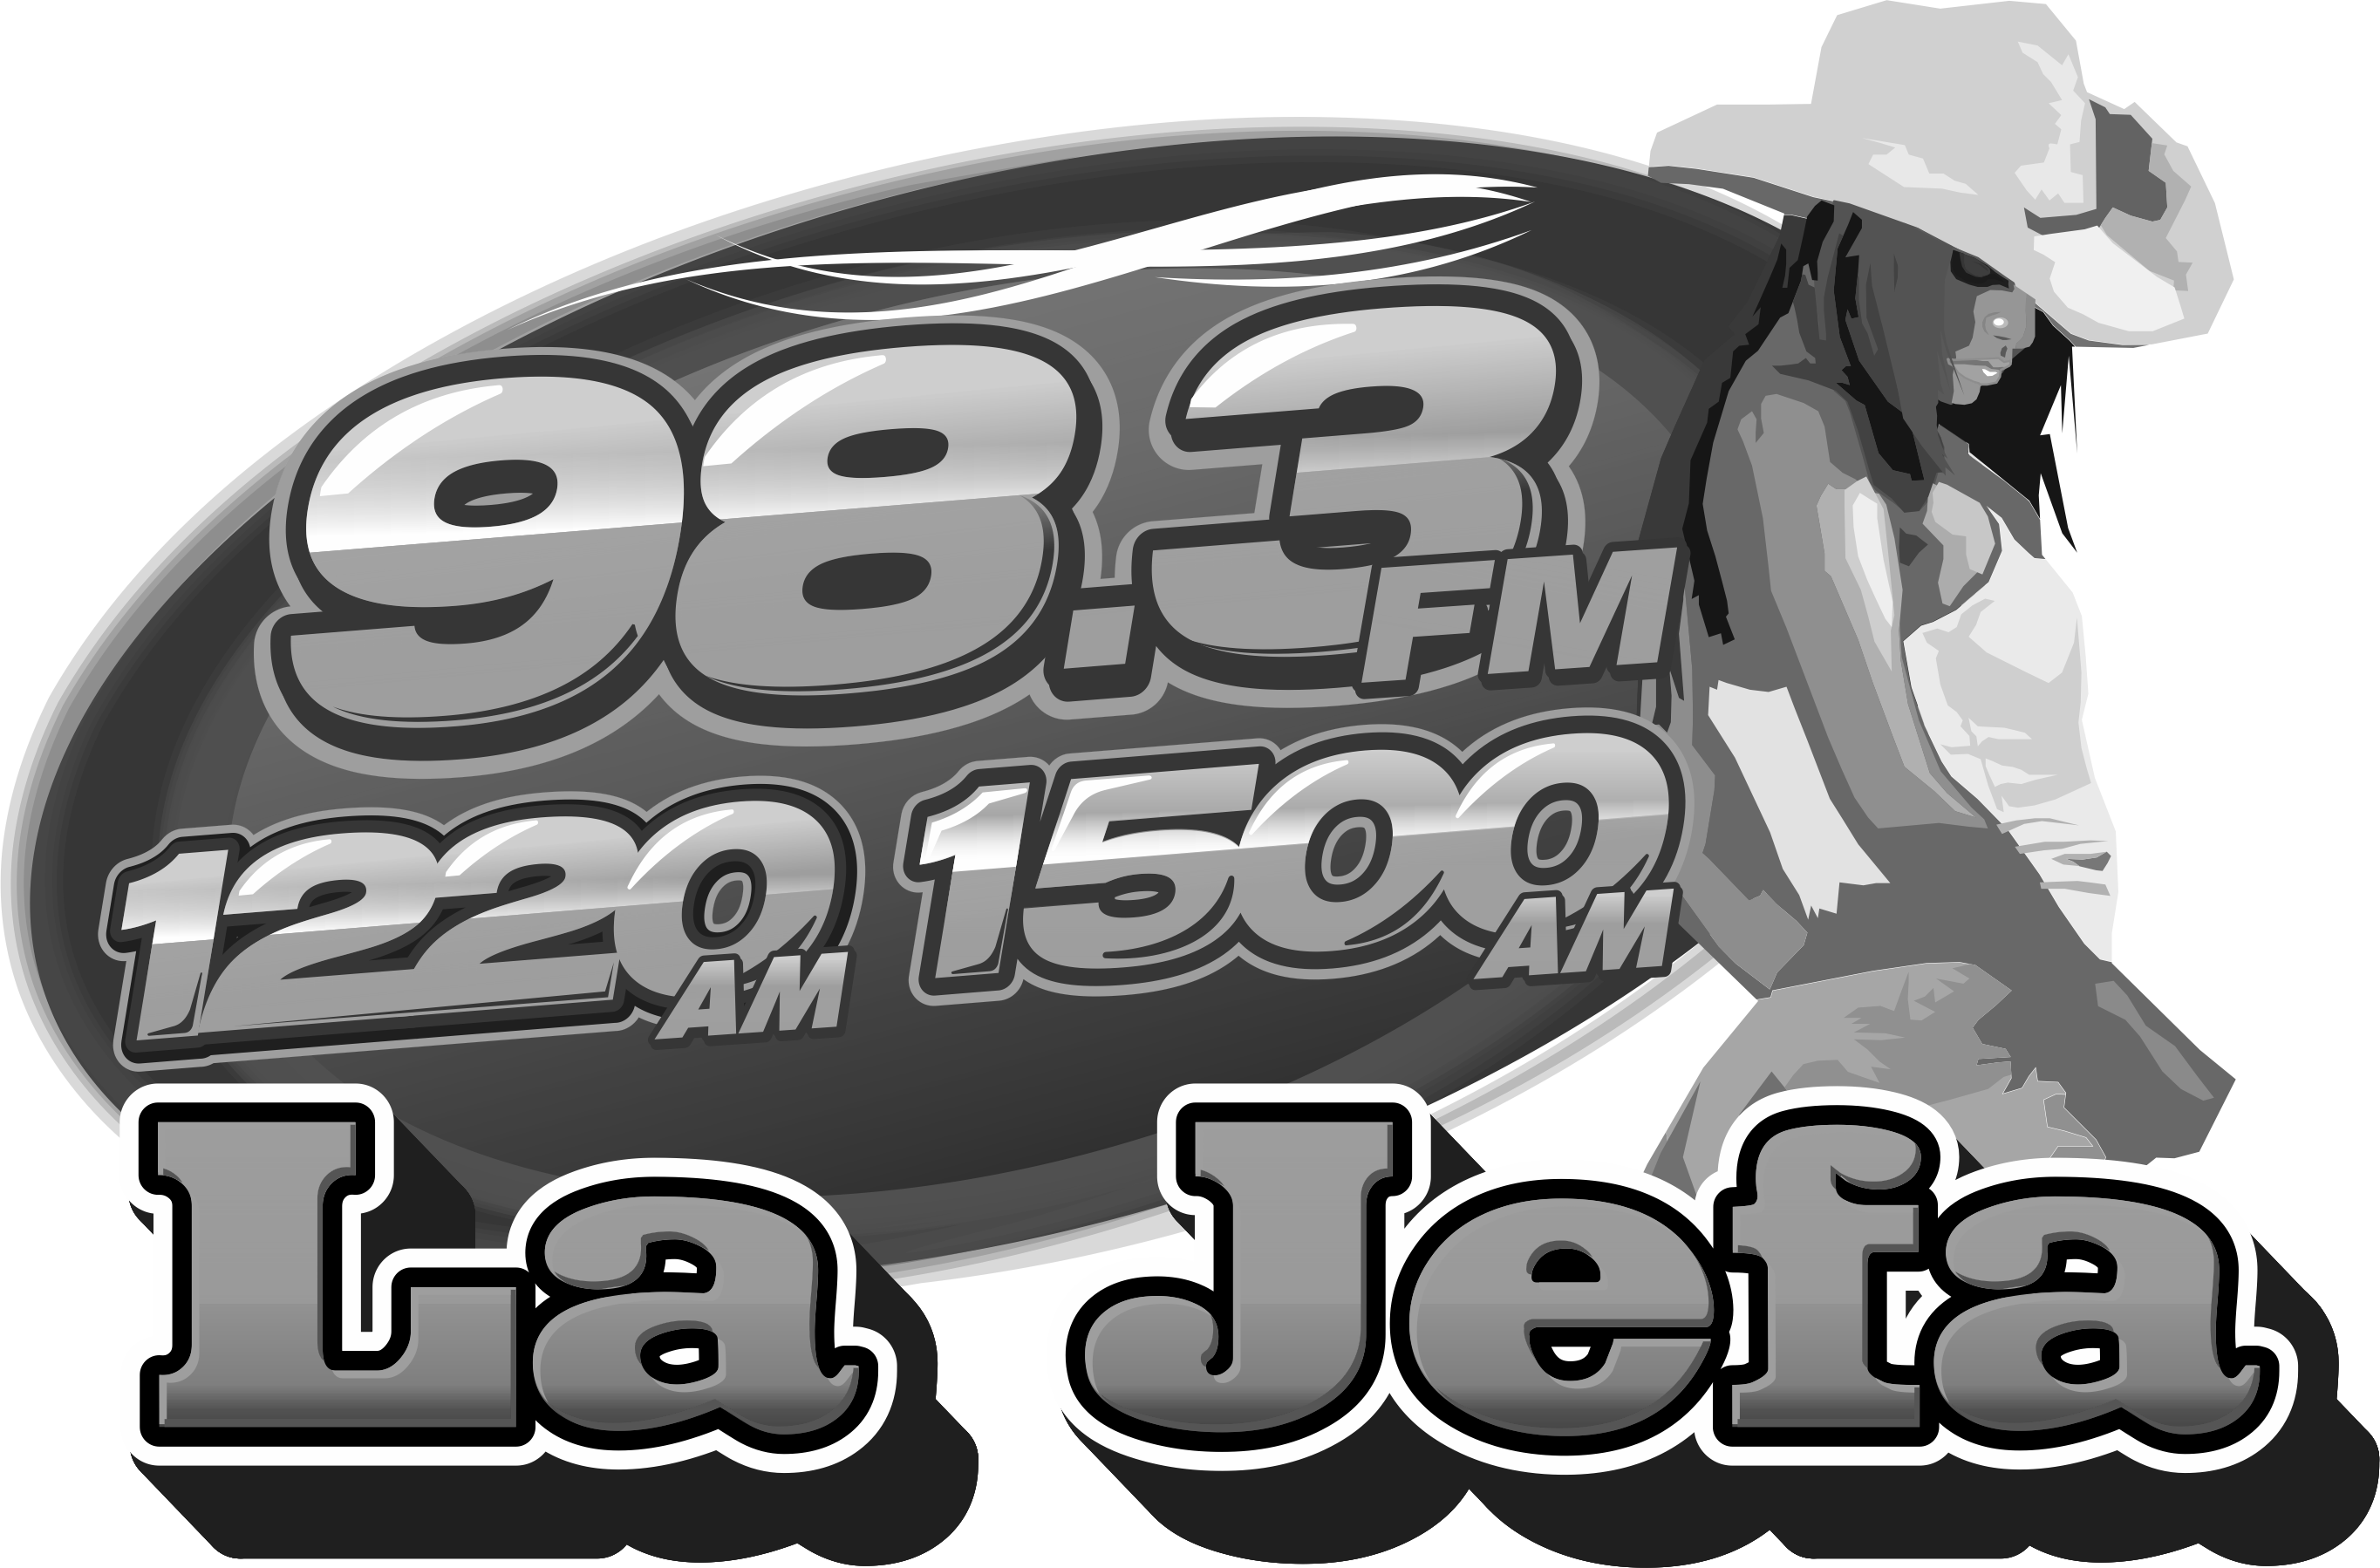 1500 AM JUAN and 98.3 LA JEFA